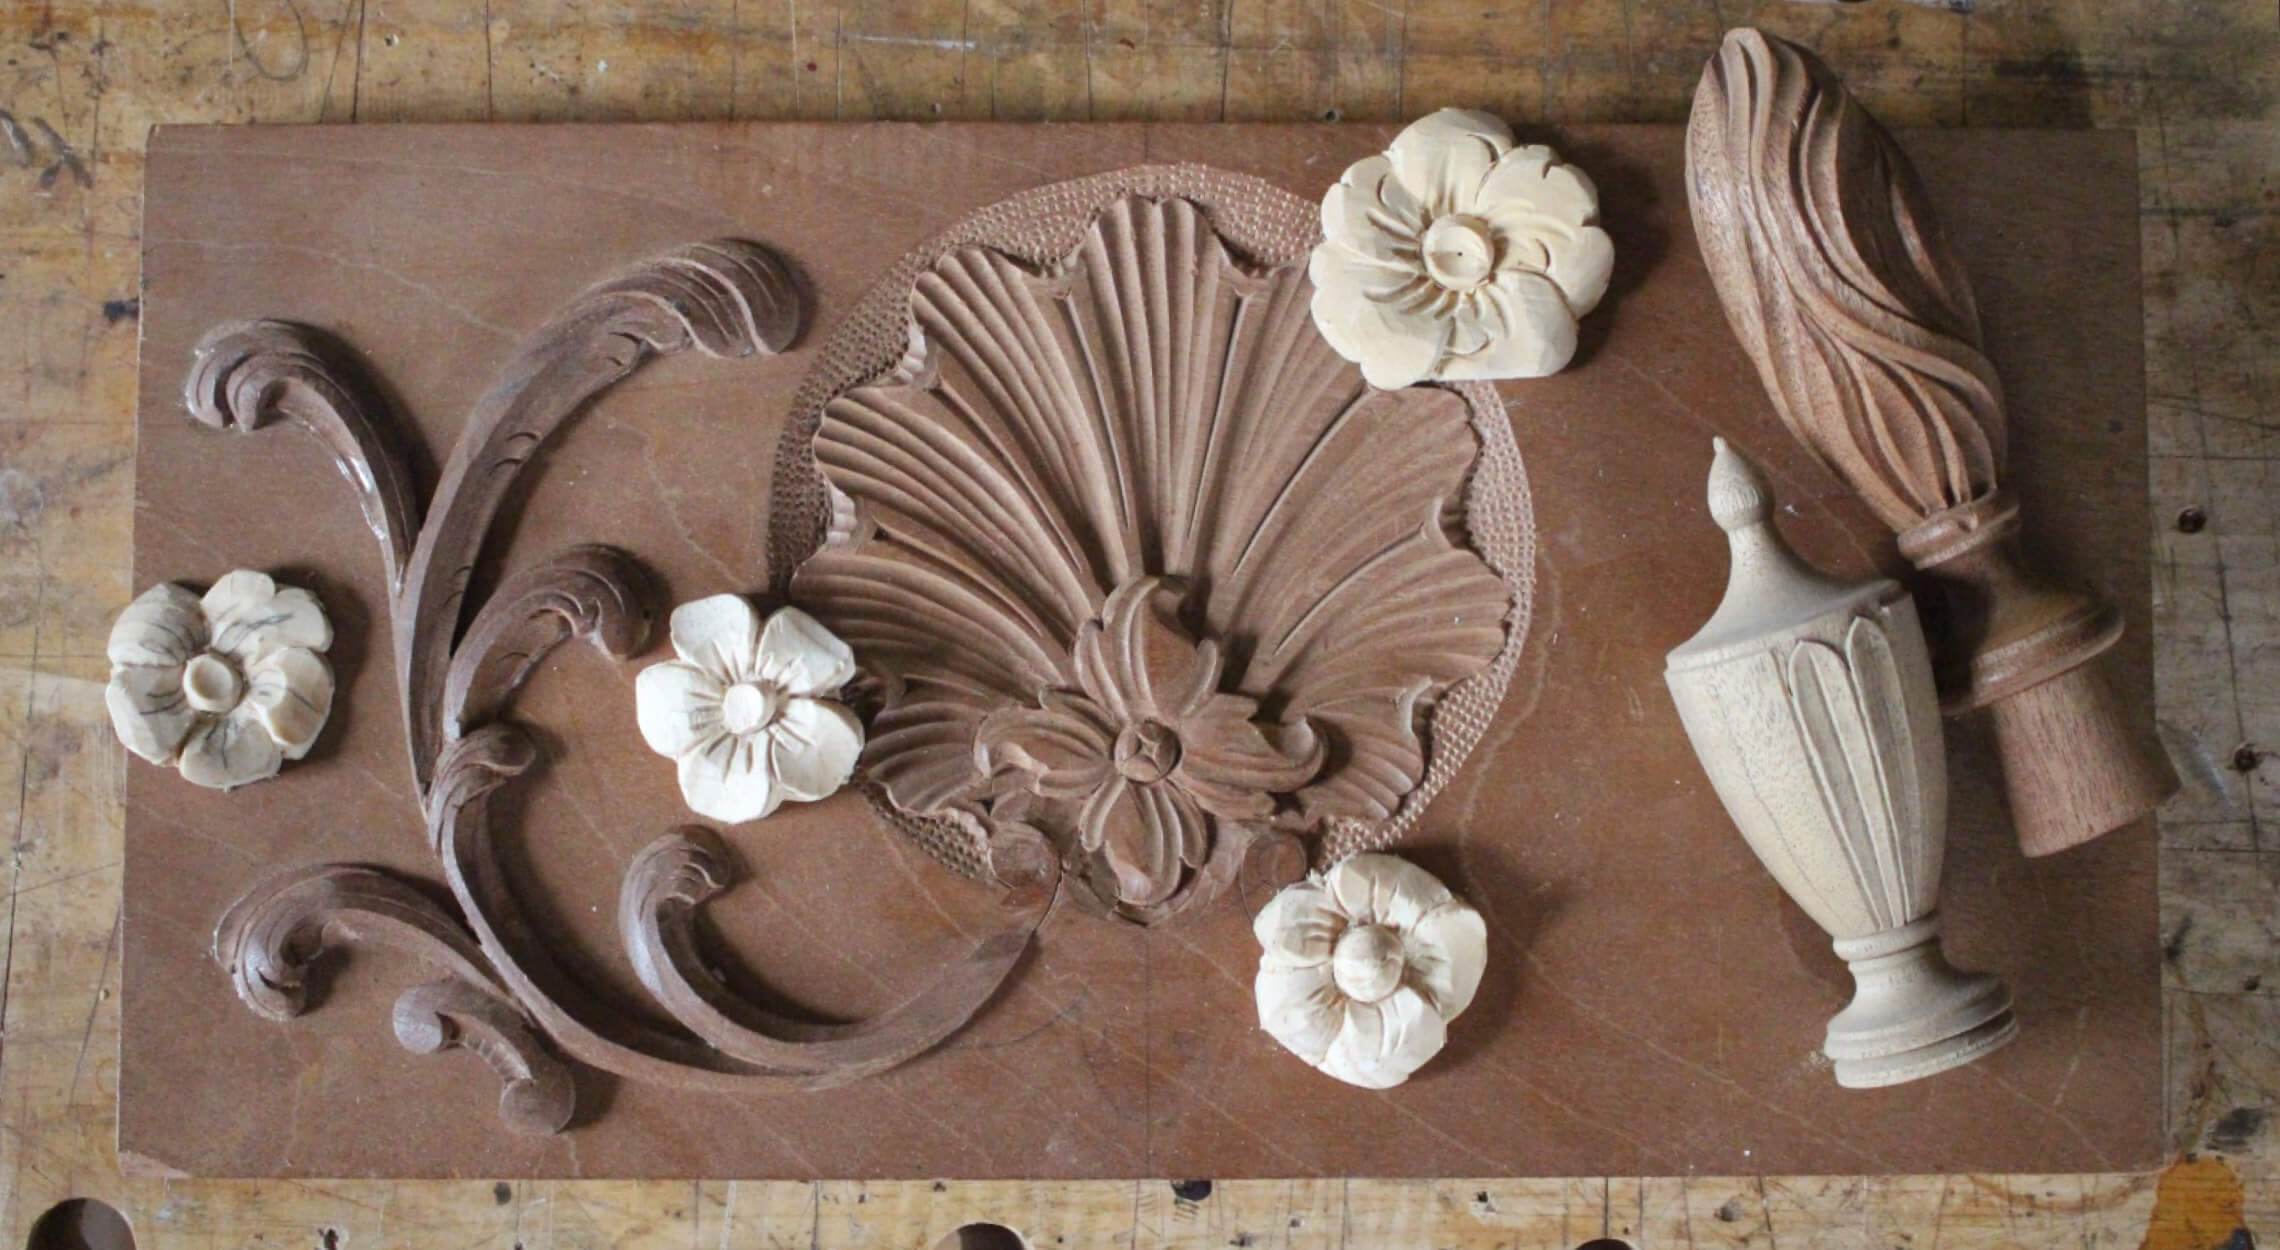 Shells, Fans, Flowers and Finials